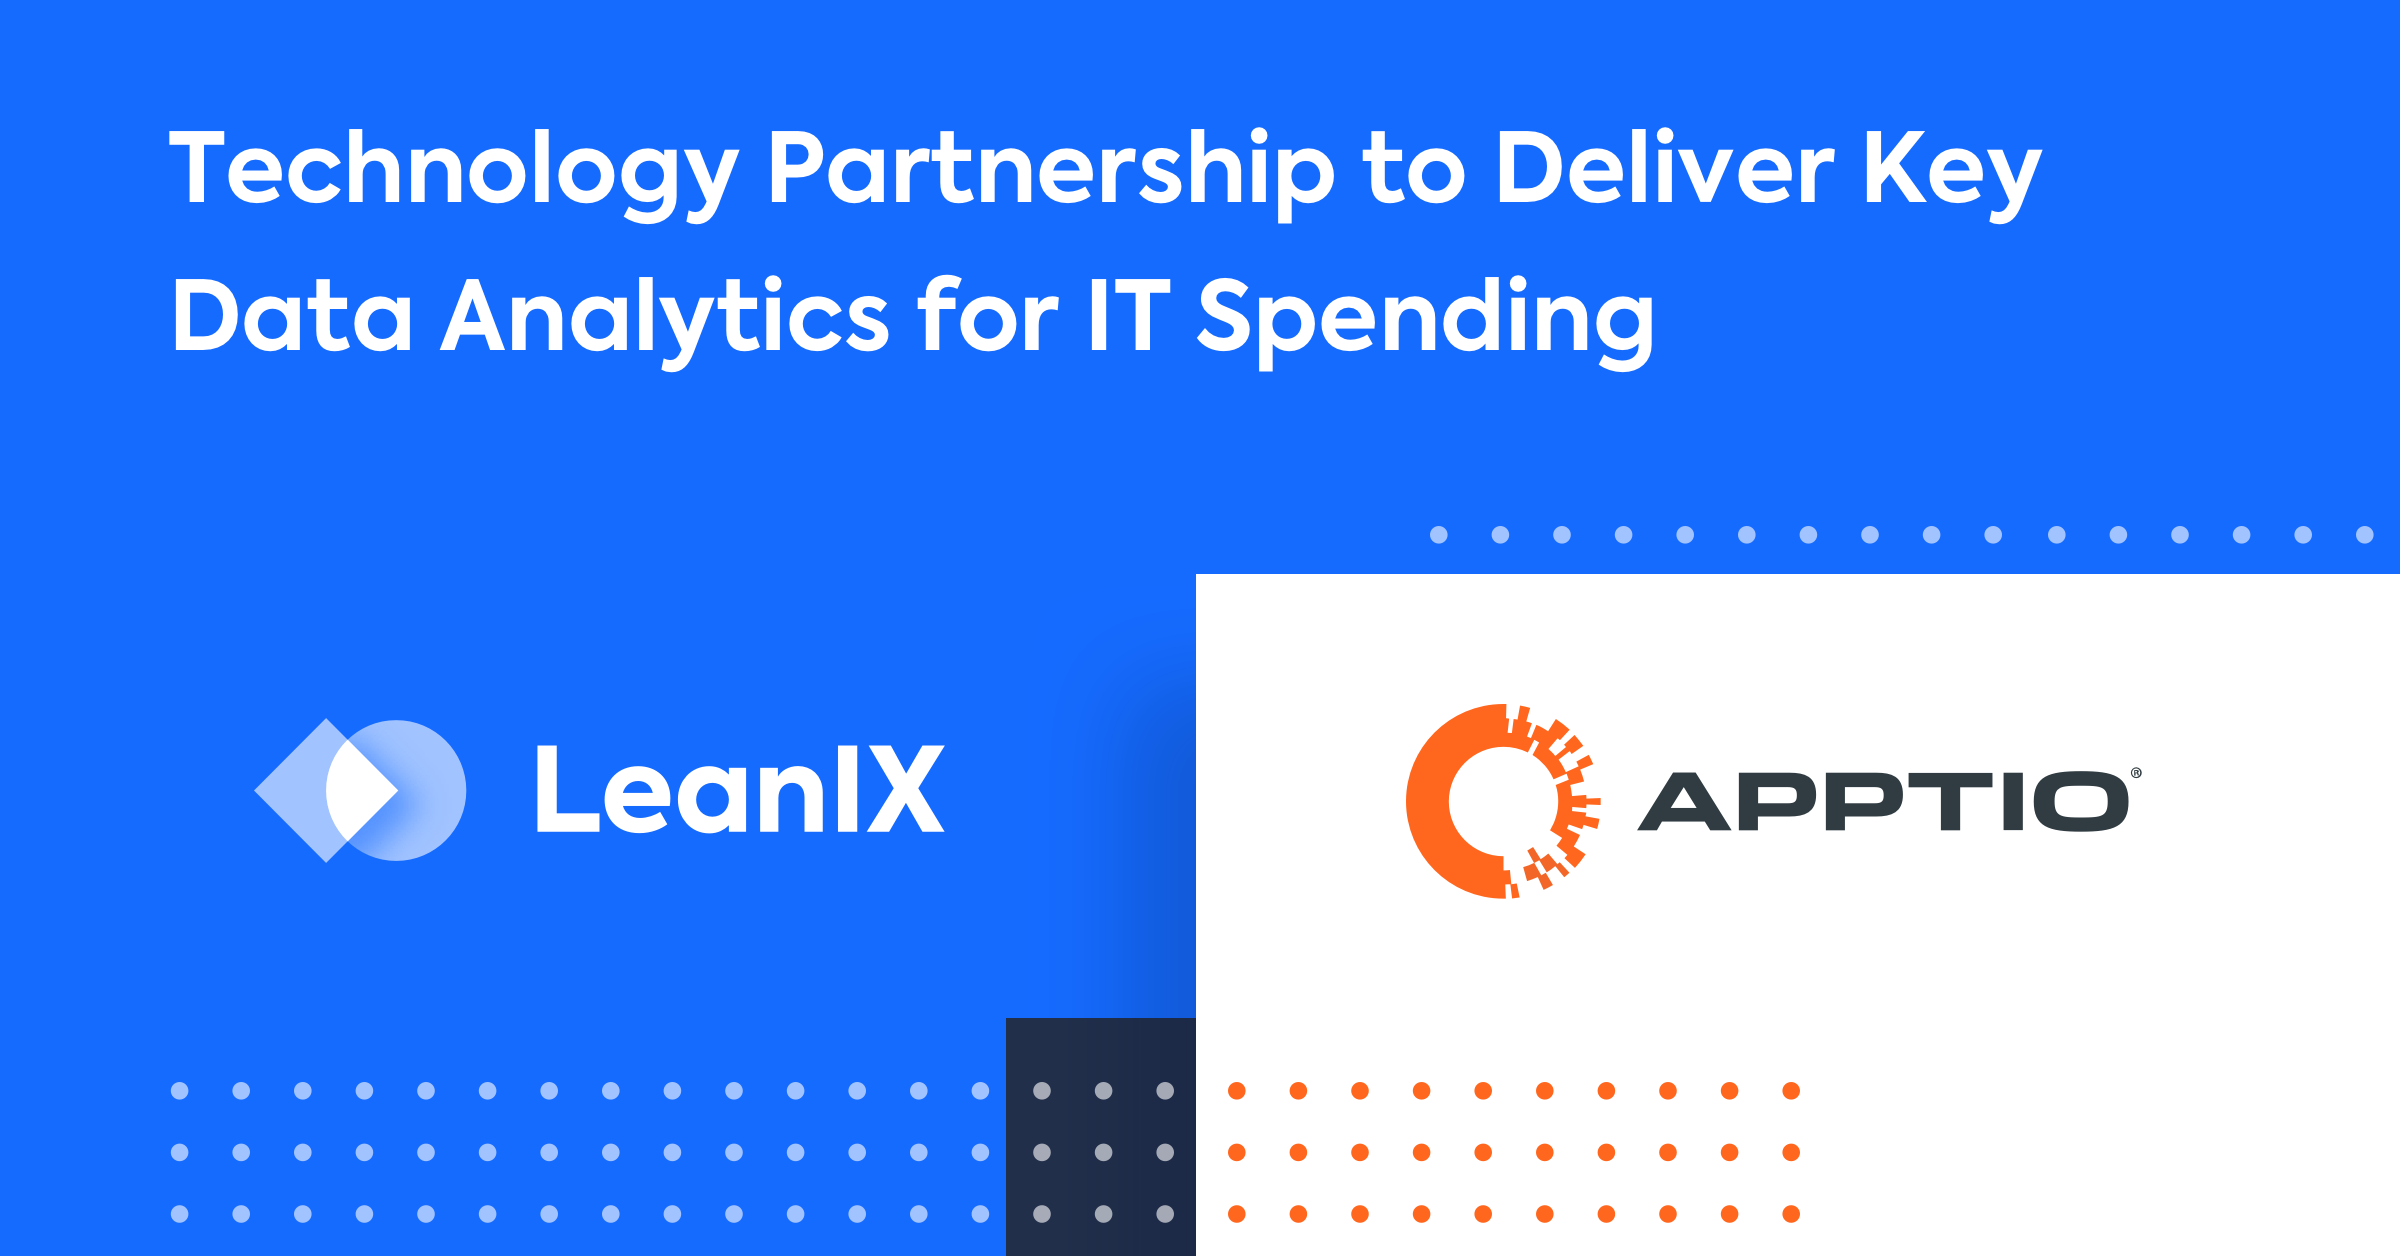 Apptio and LeanIX: What Enterprise Architects Can Expect